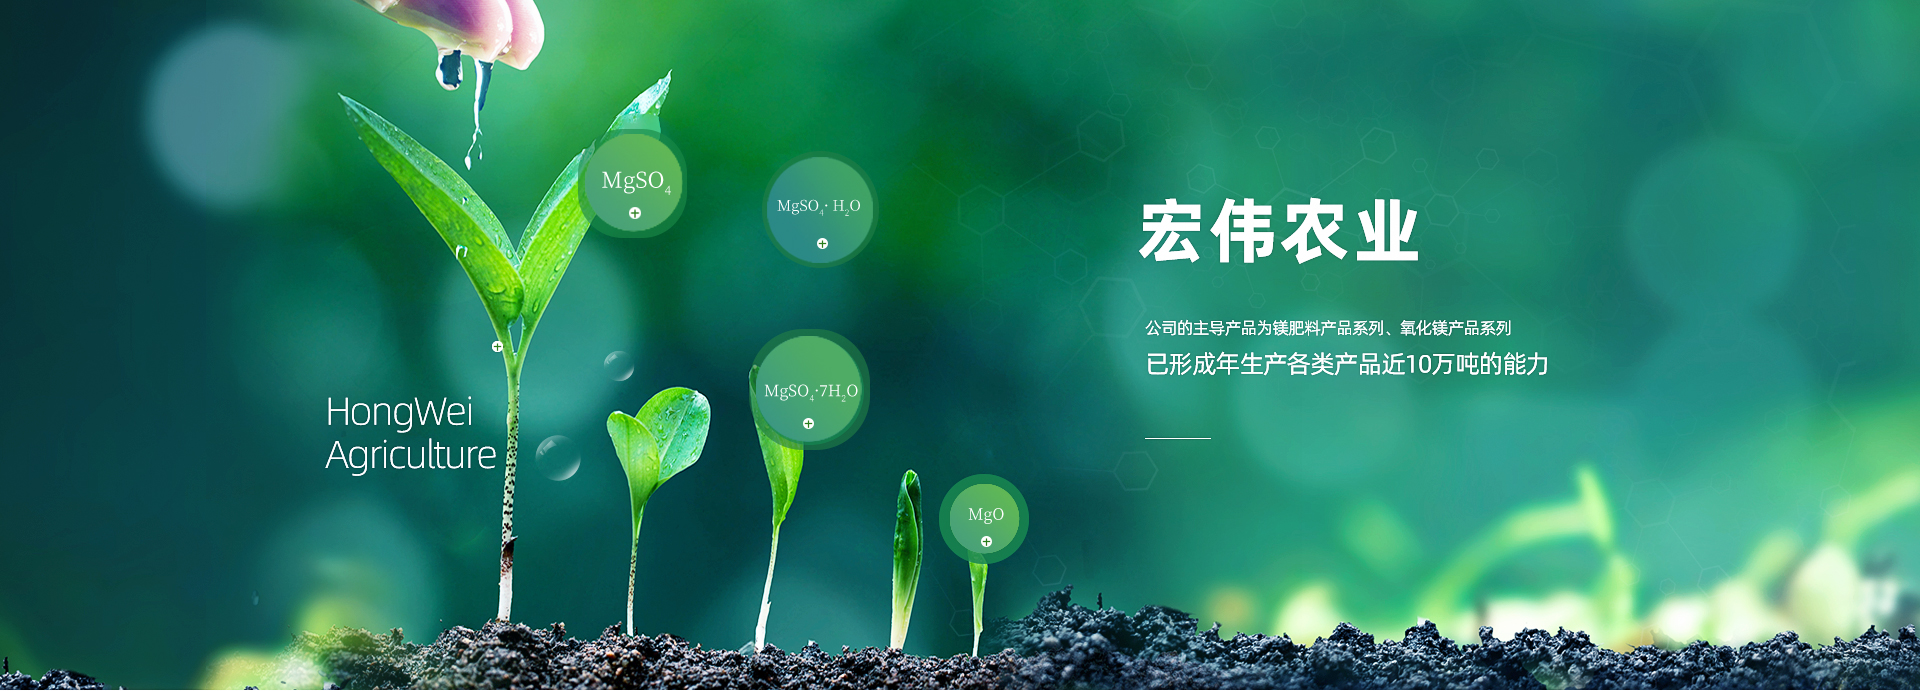 http://www.agri-hongwei.com/data/upload/201912/20191216120141_133.jpg